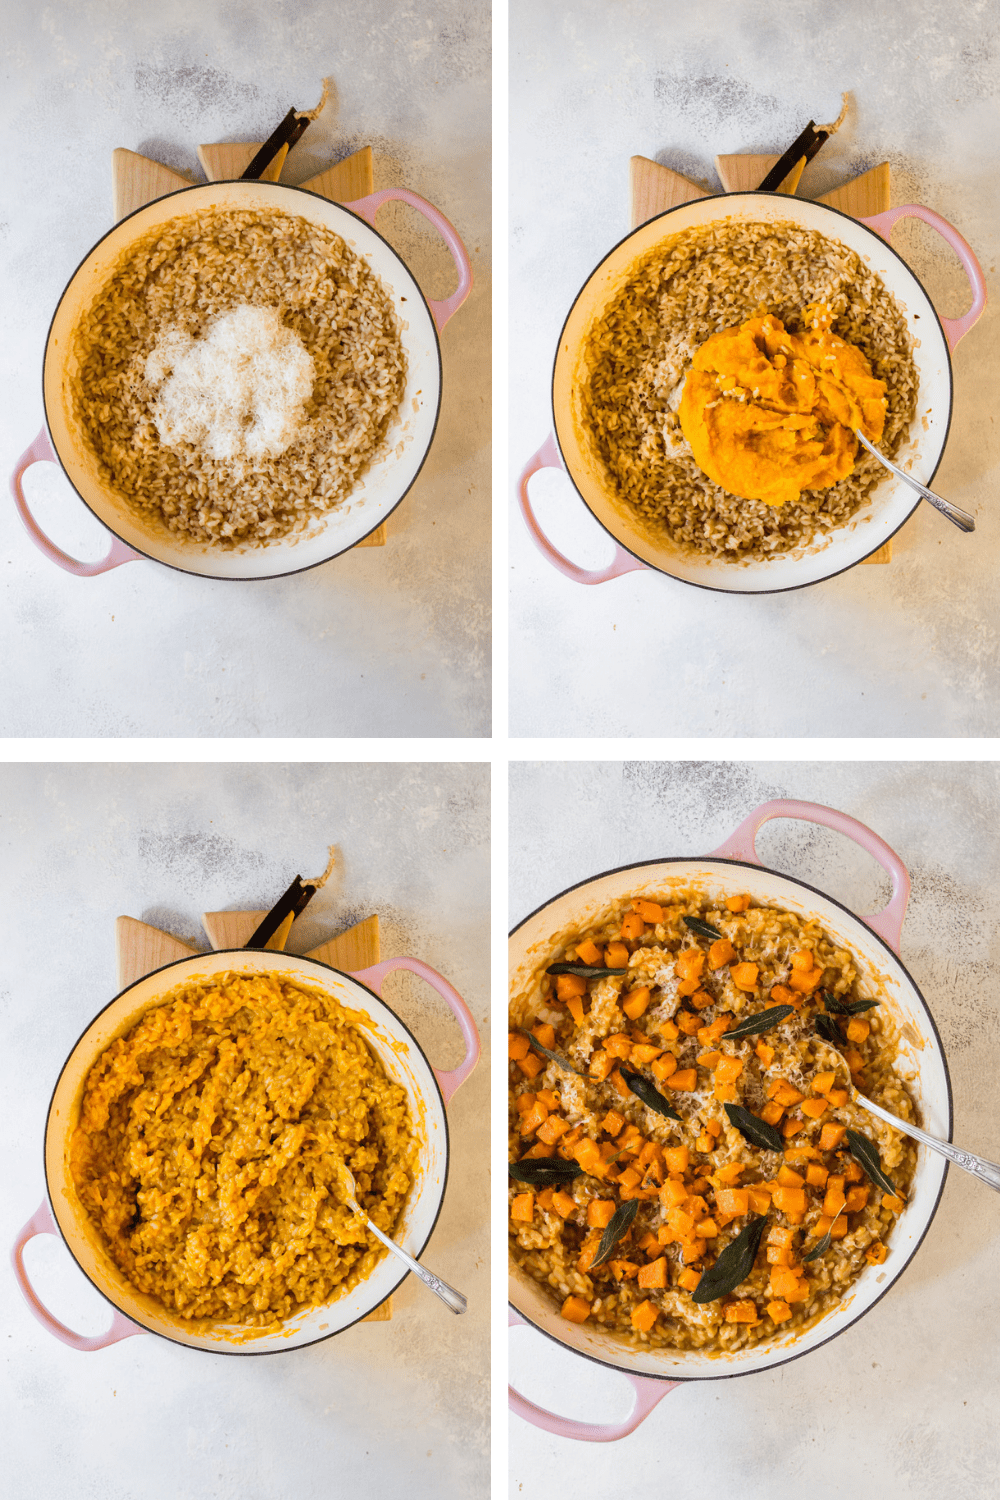 4 images showing the process of cooking the roasted butternut squash risotto